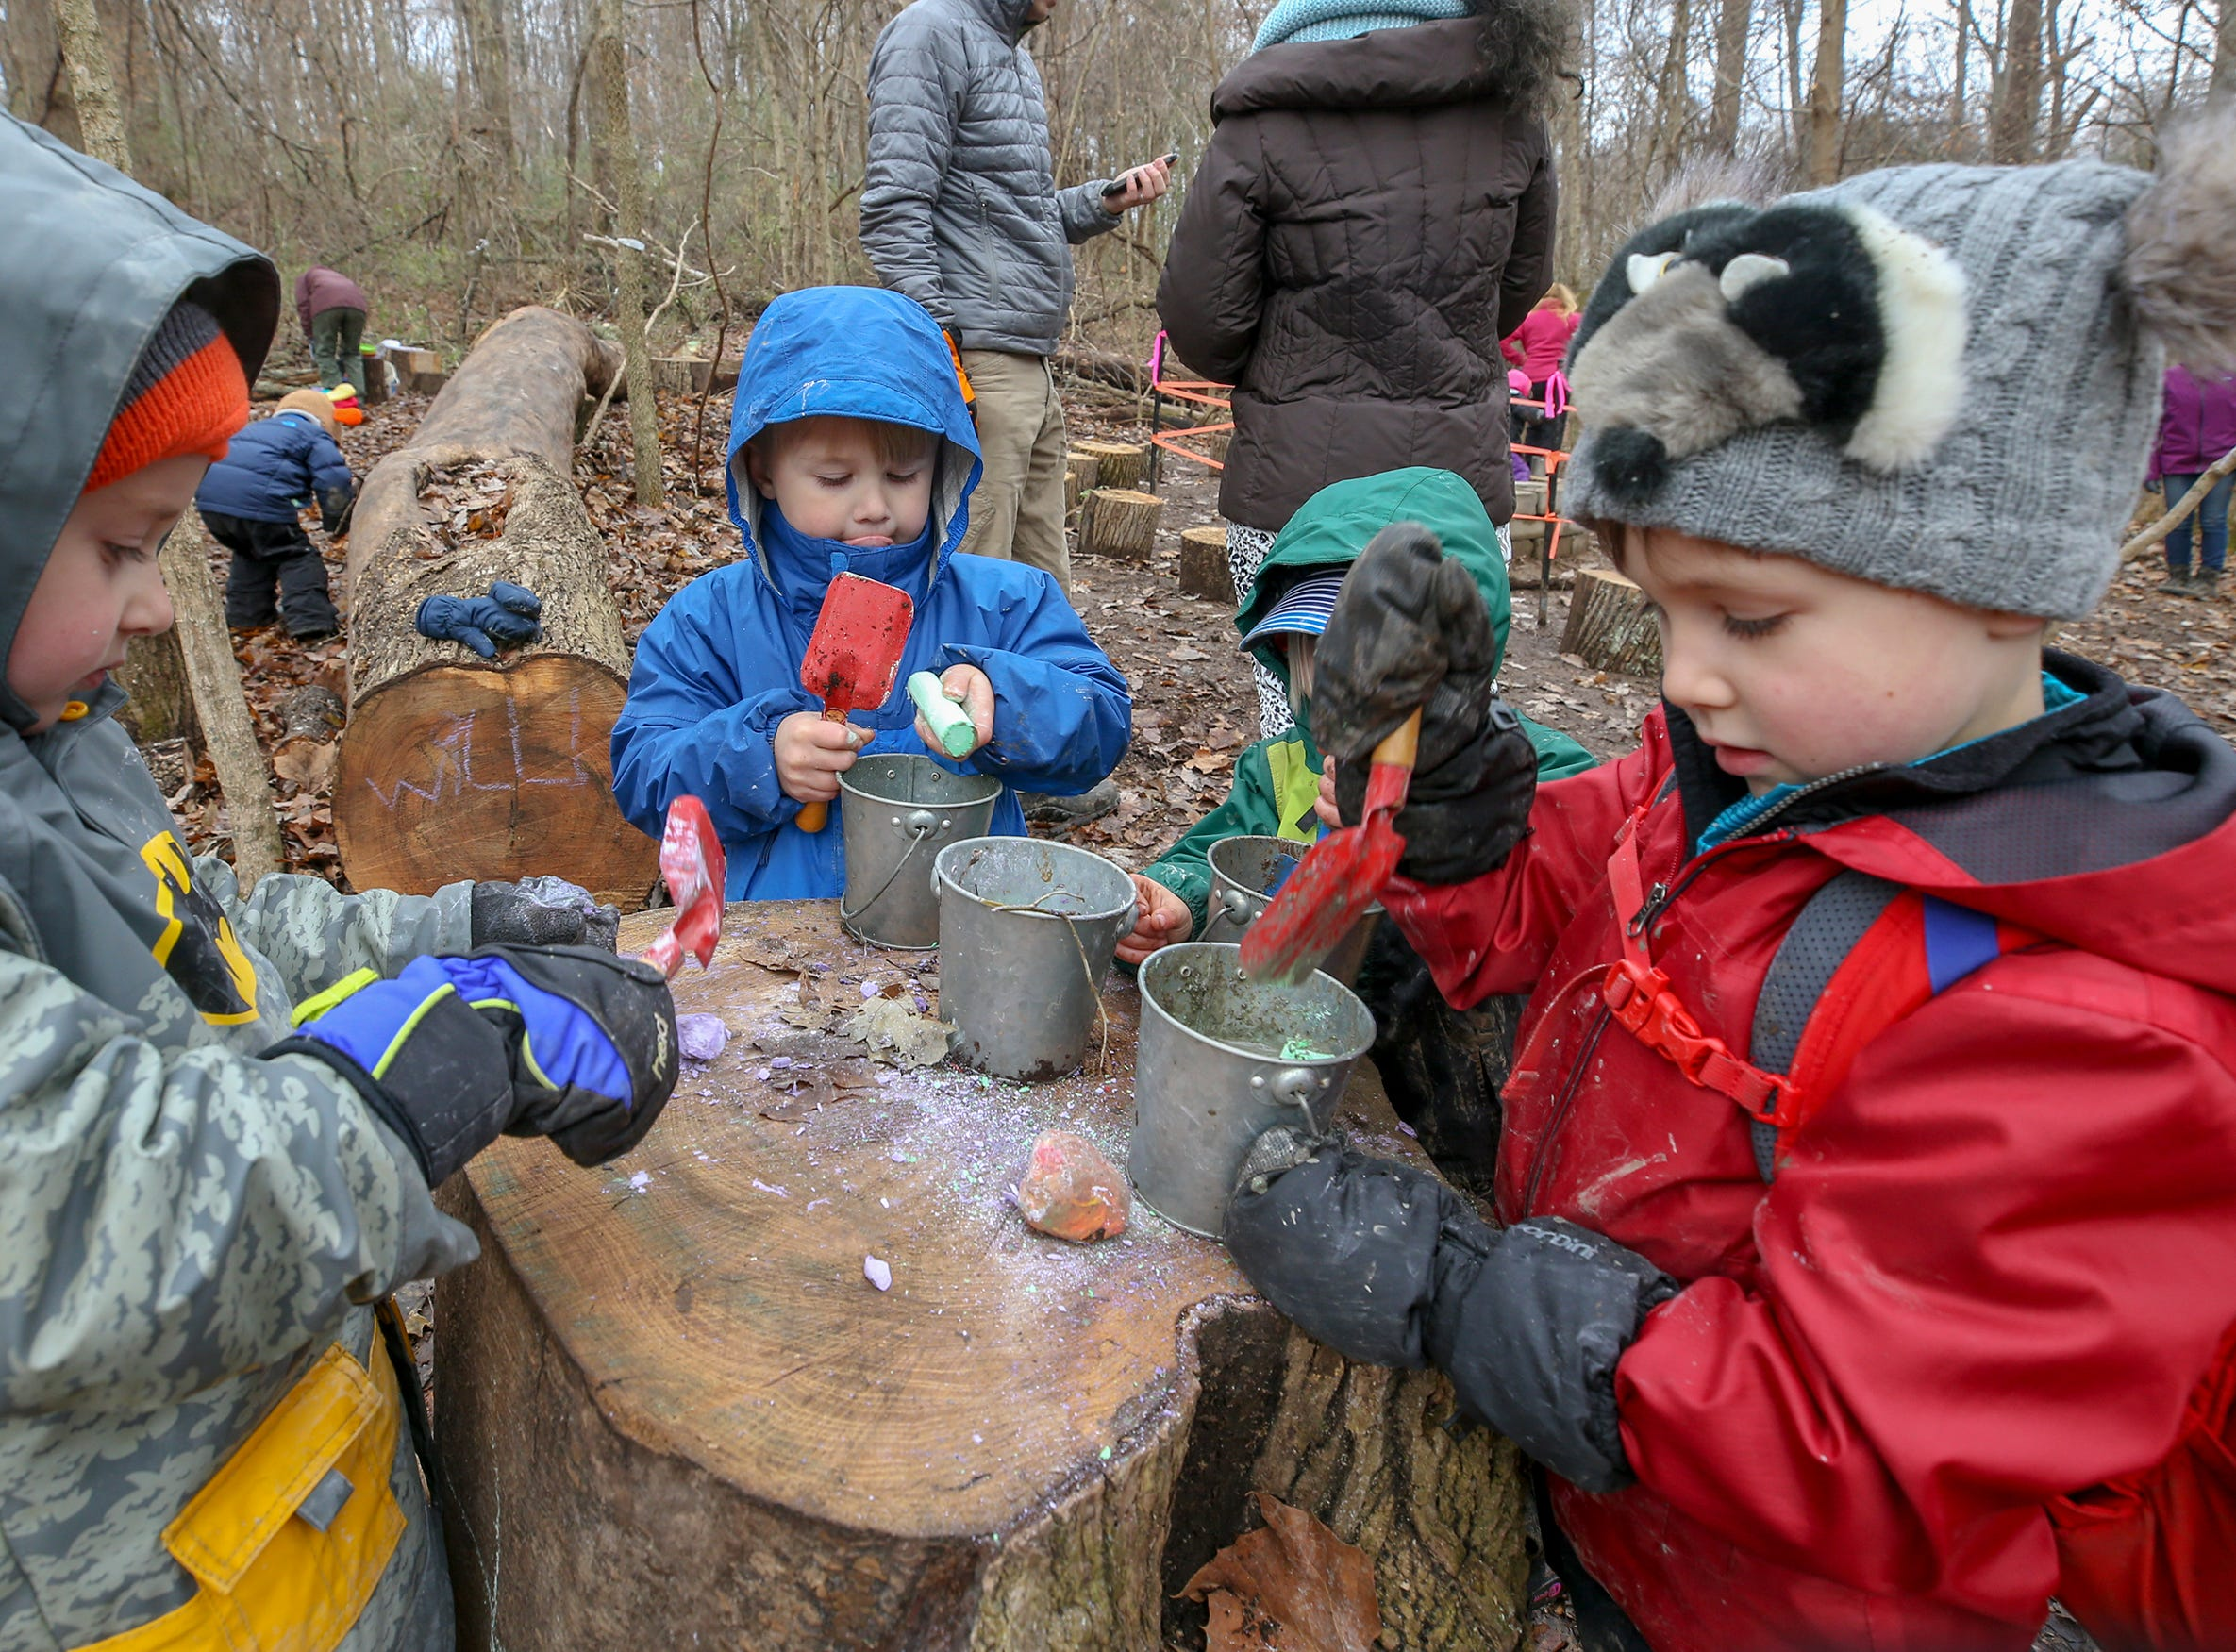 Students at Thrive Forest School, including Quinn Mahoney, left, and Will Clark, right, work to create a concoction using leaves, twigs, mud, stream water and chalk at Creasey Mahan Nature Preserve.November 19, 2018